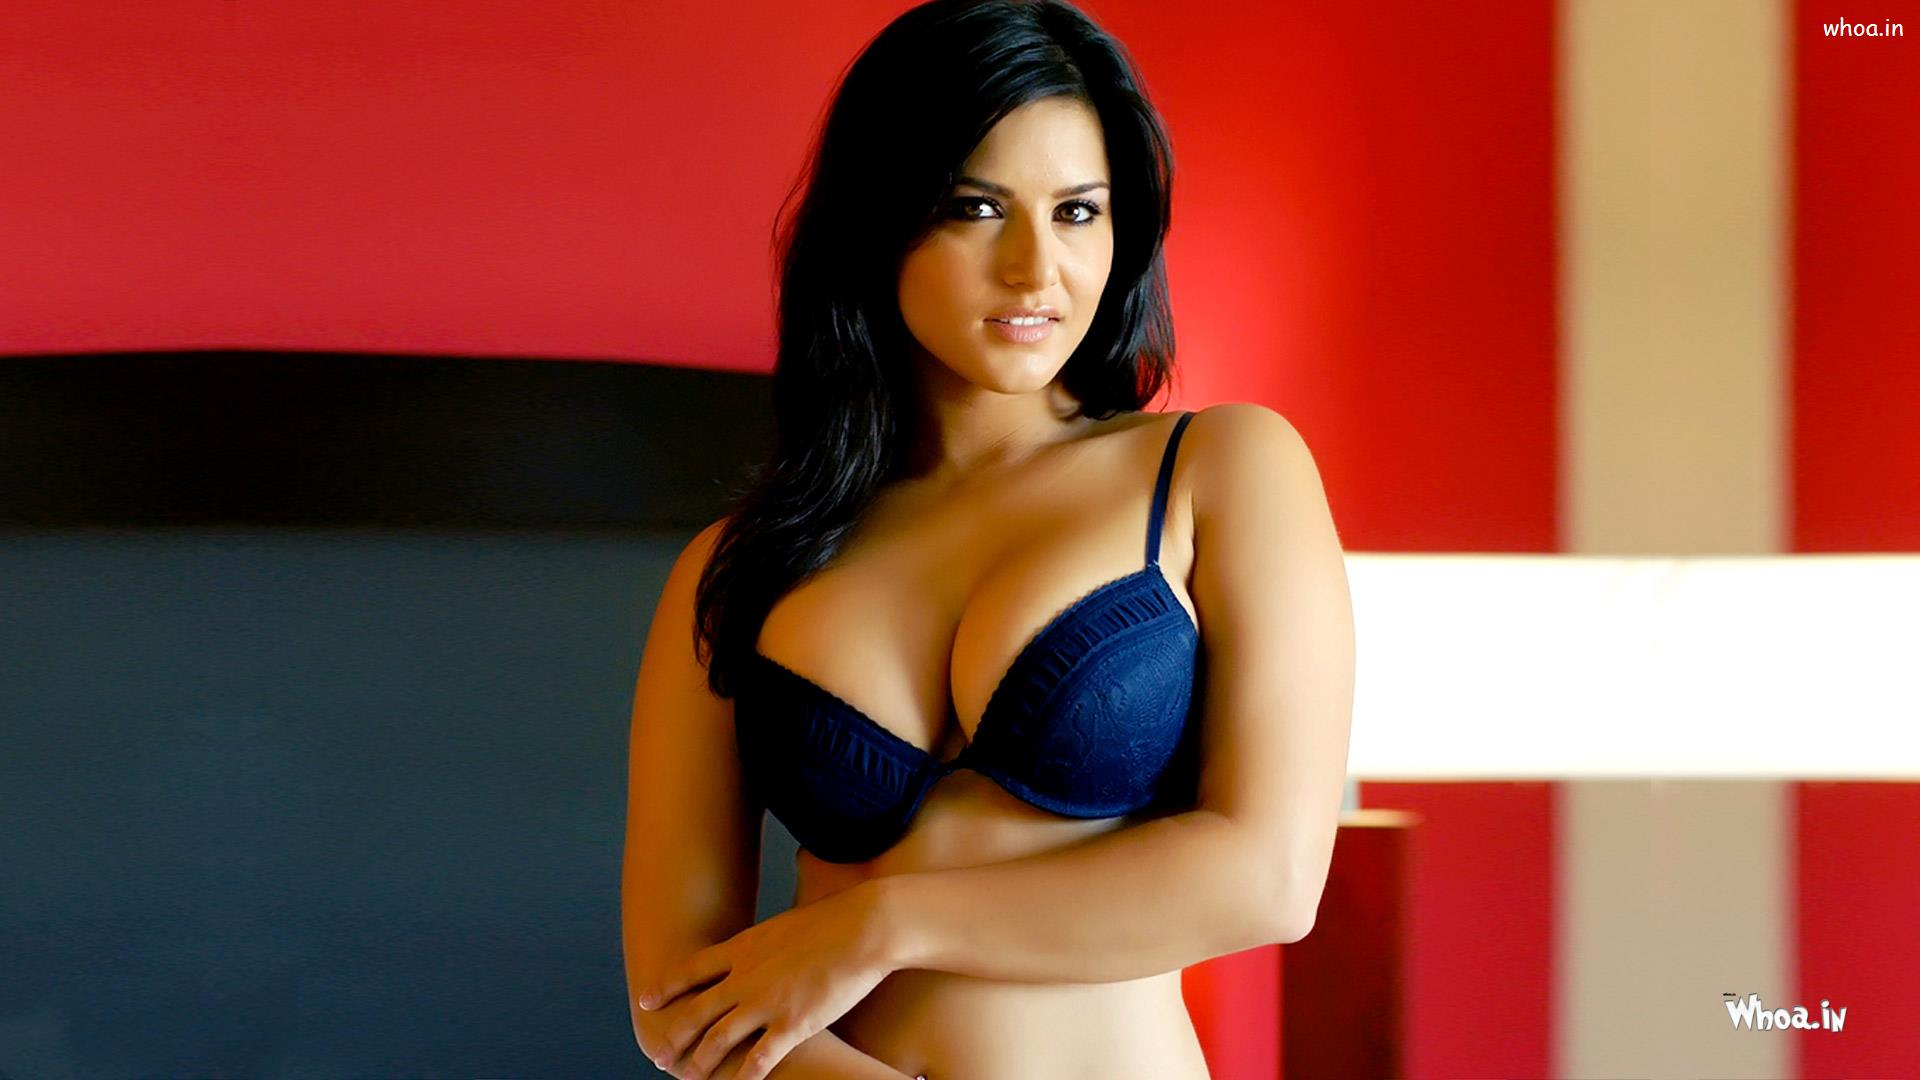 sunny leone hd wallpapers download - sf wallpaper